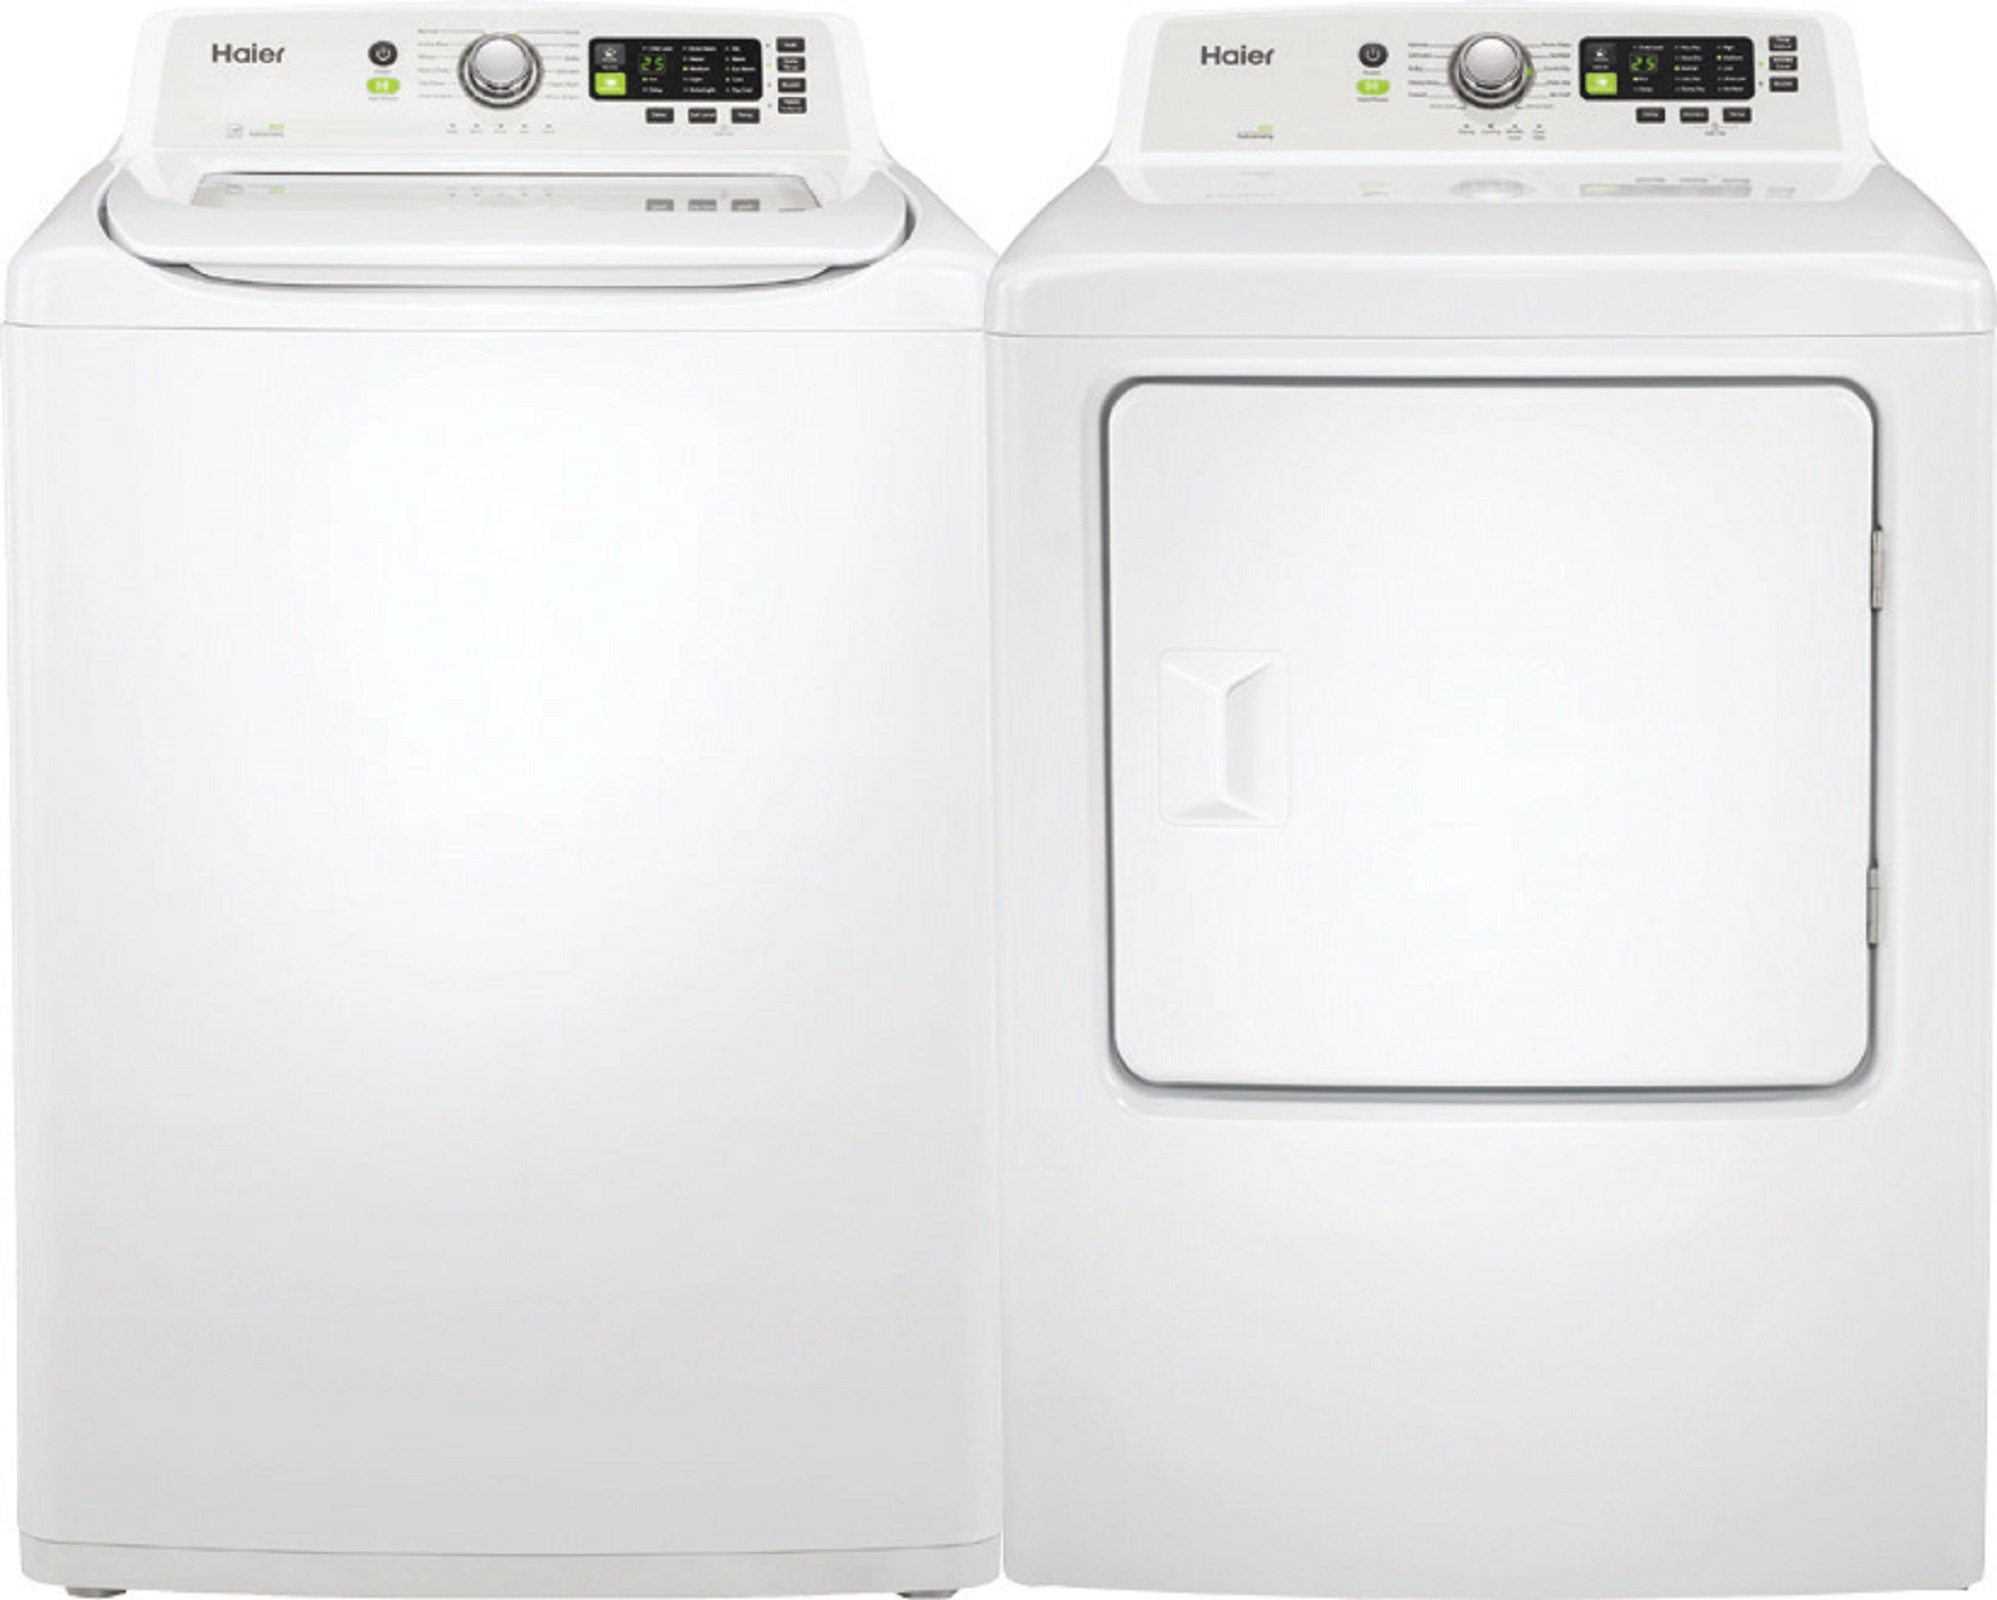 Haier 4.1 cu. ft. Washer and 6.7 cu. ft. Electric Dryer